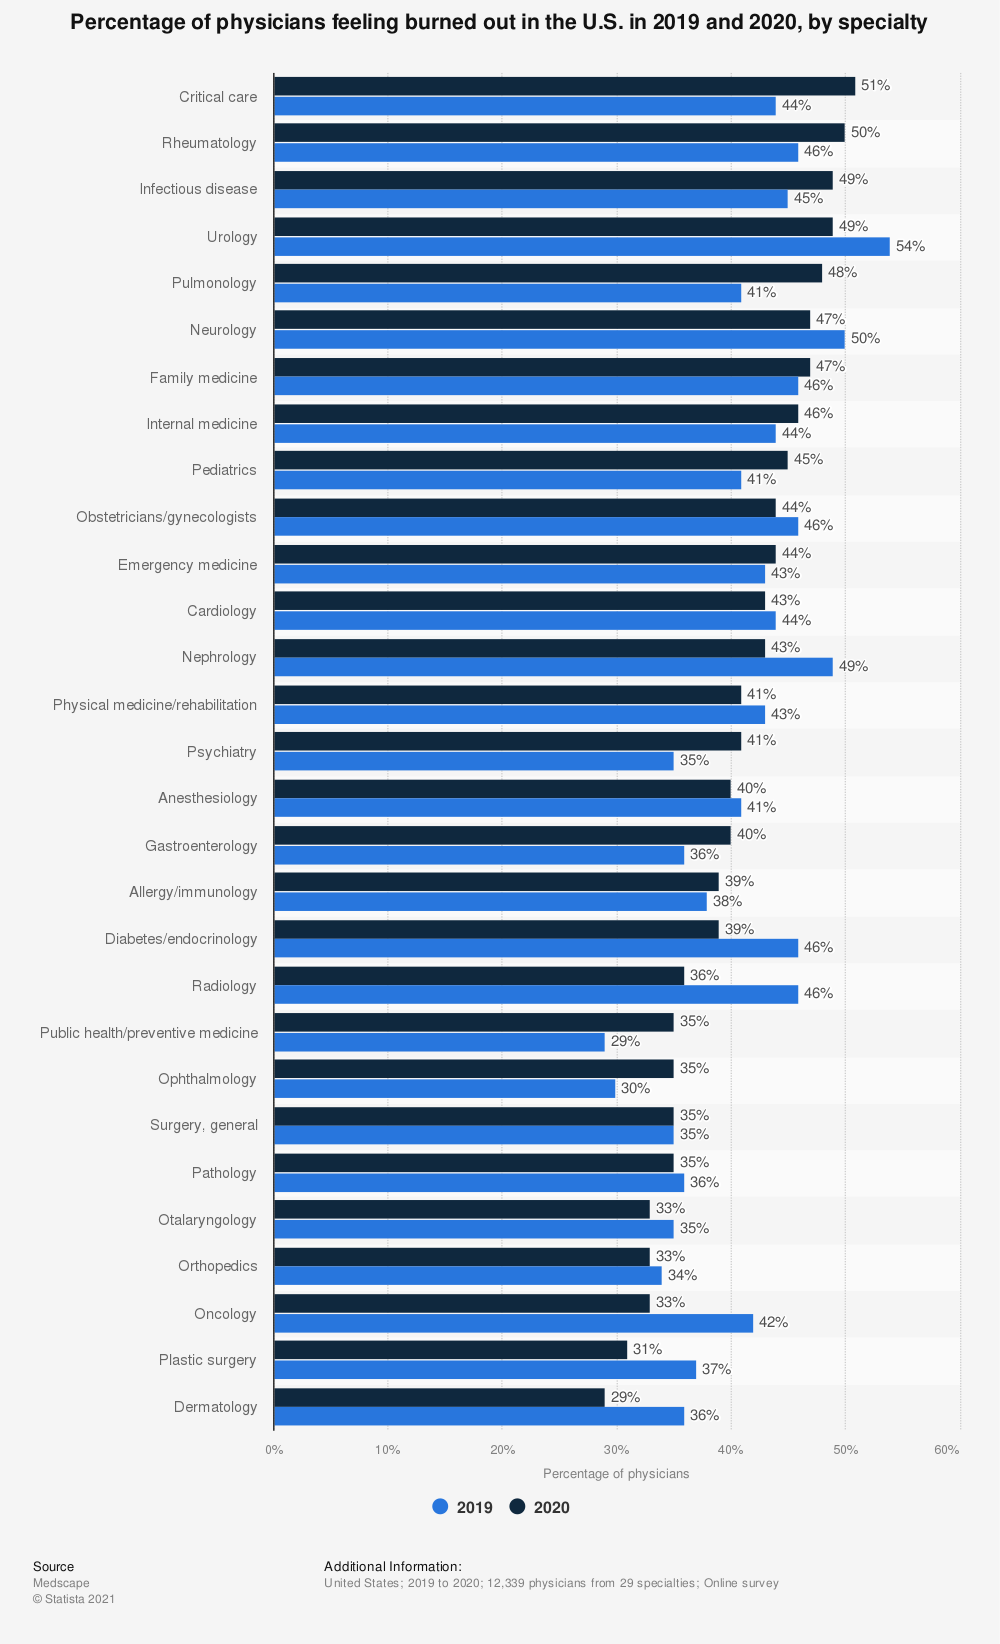 Statistic: Percentage of physicians feeling burned out in the U.S. as of 2019, by specialty | Statista